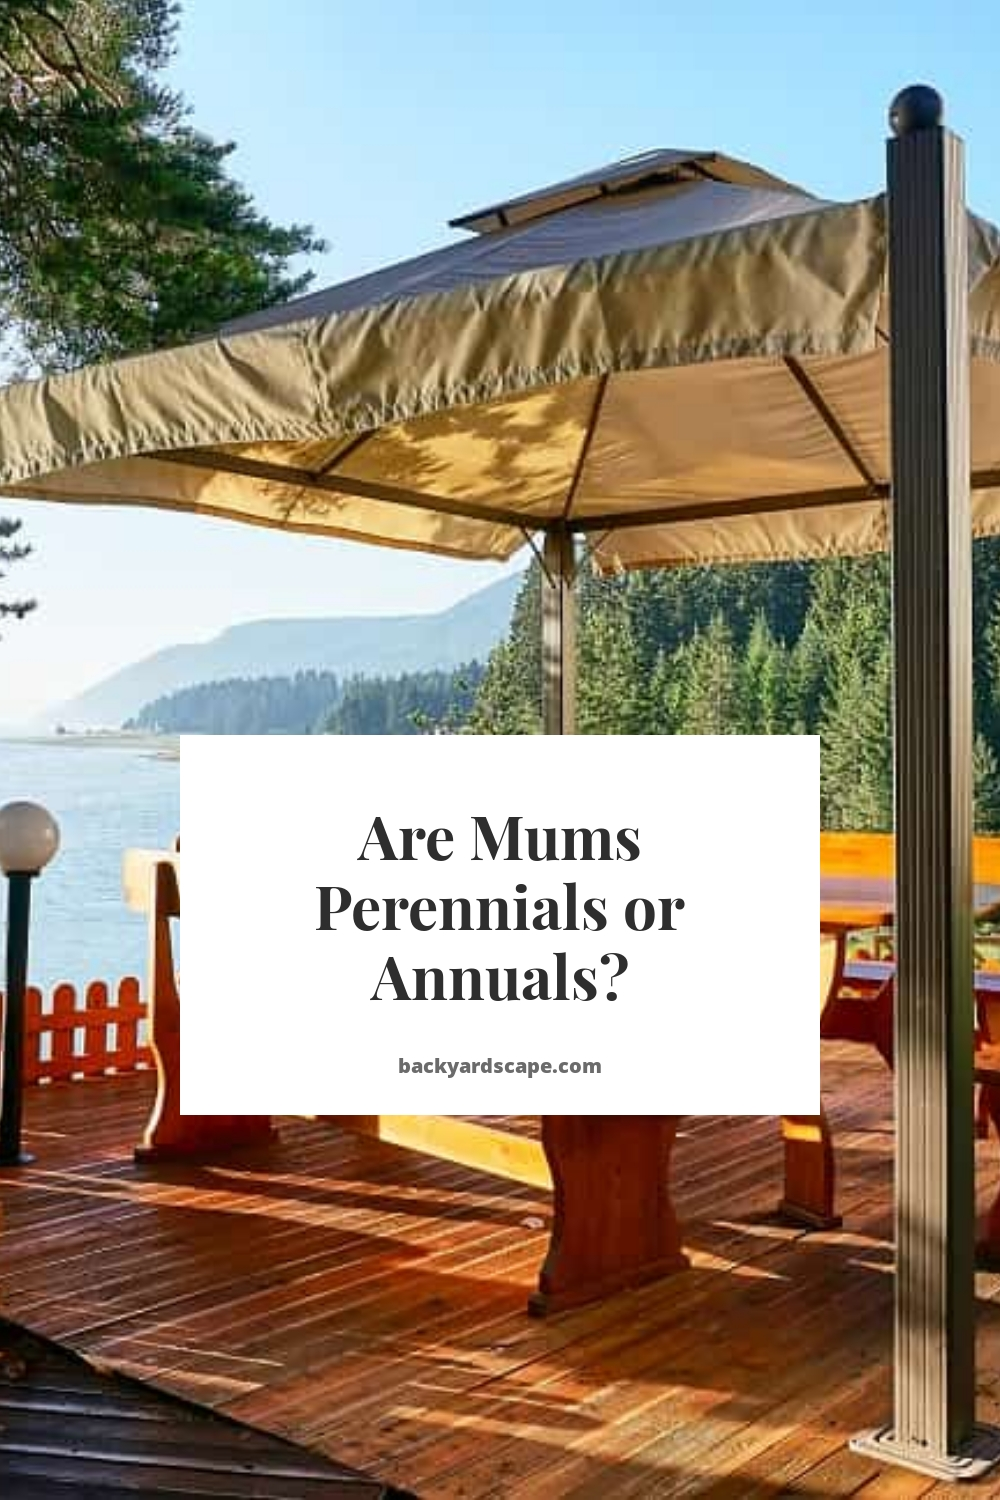 Are Mums Perennials or Annuals?